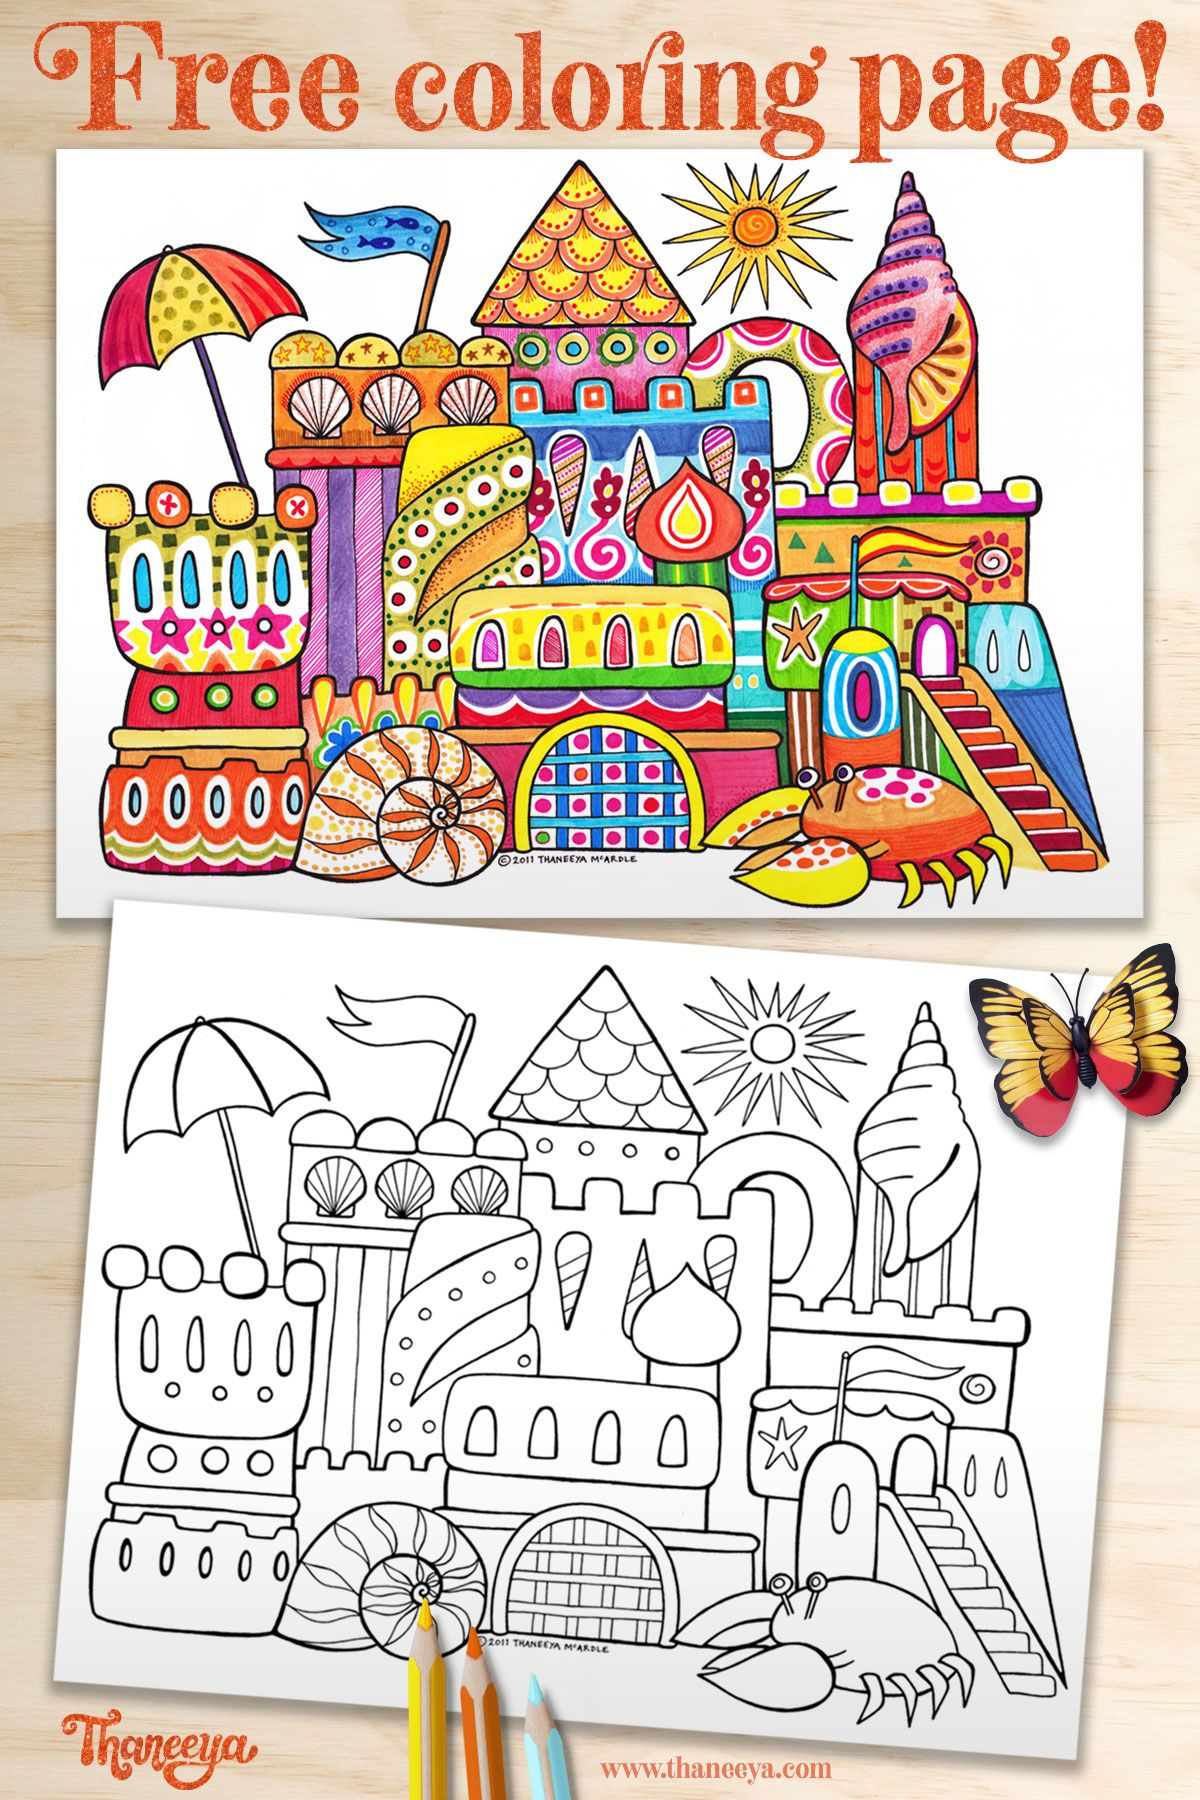 Pin On Coloring Pages By Thaneeya Printable Pdfs